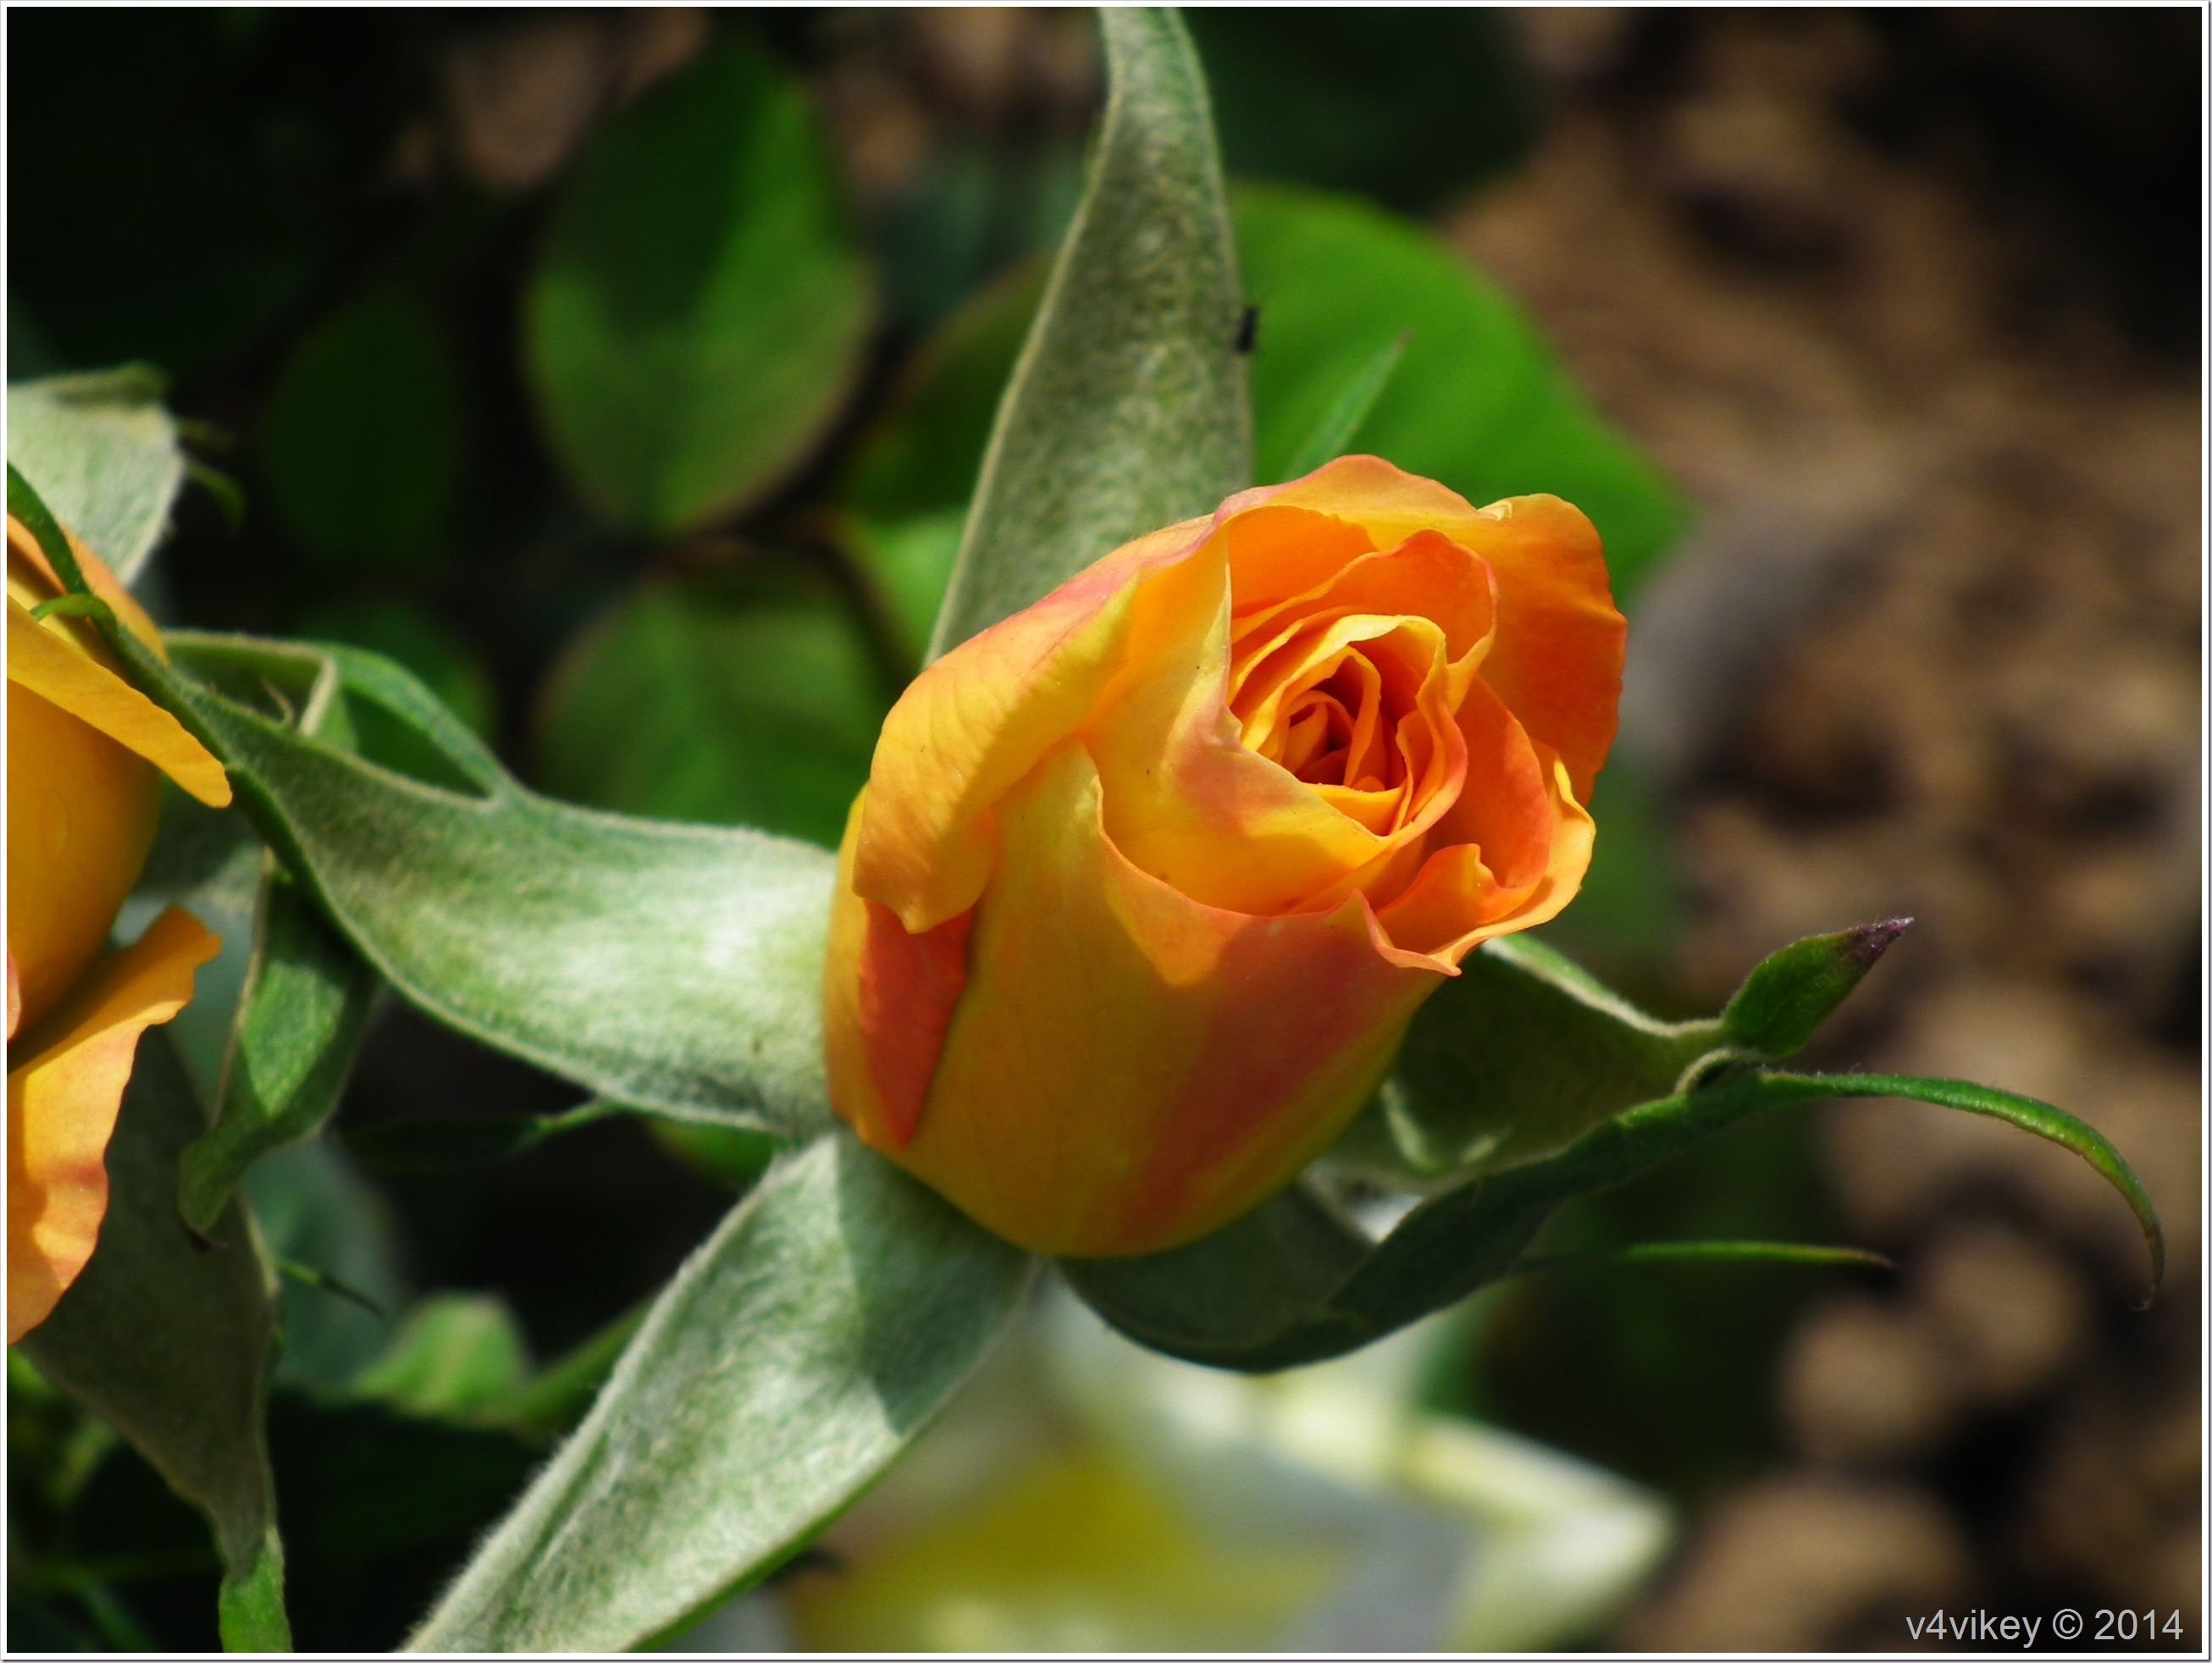 Rose Flower Bud in Yellow Color